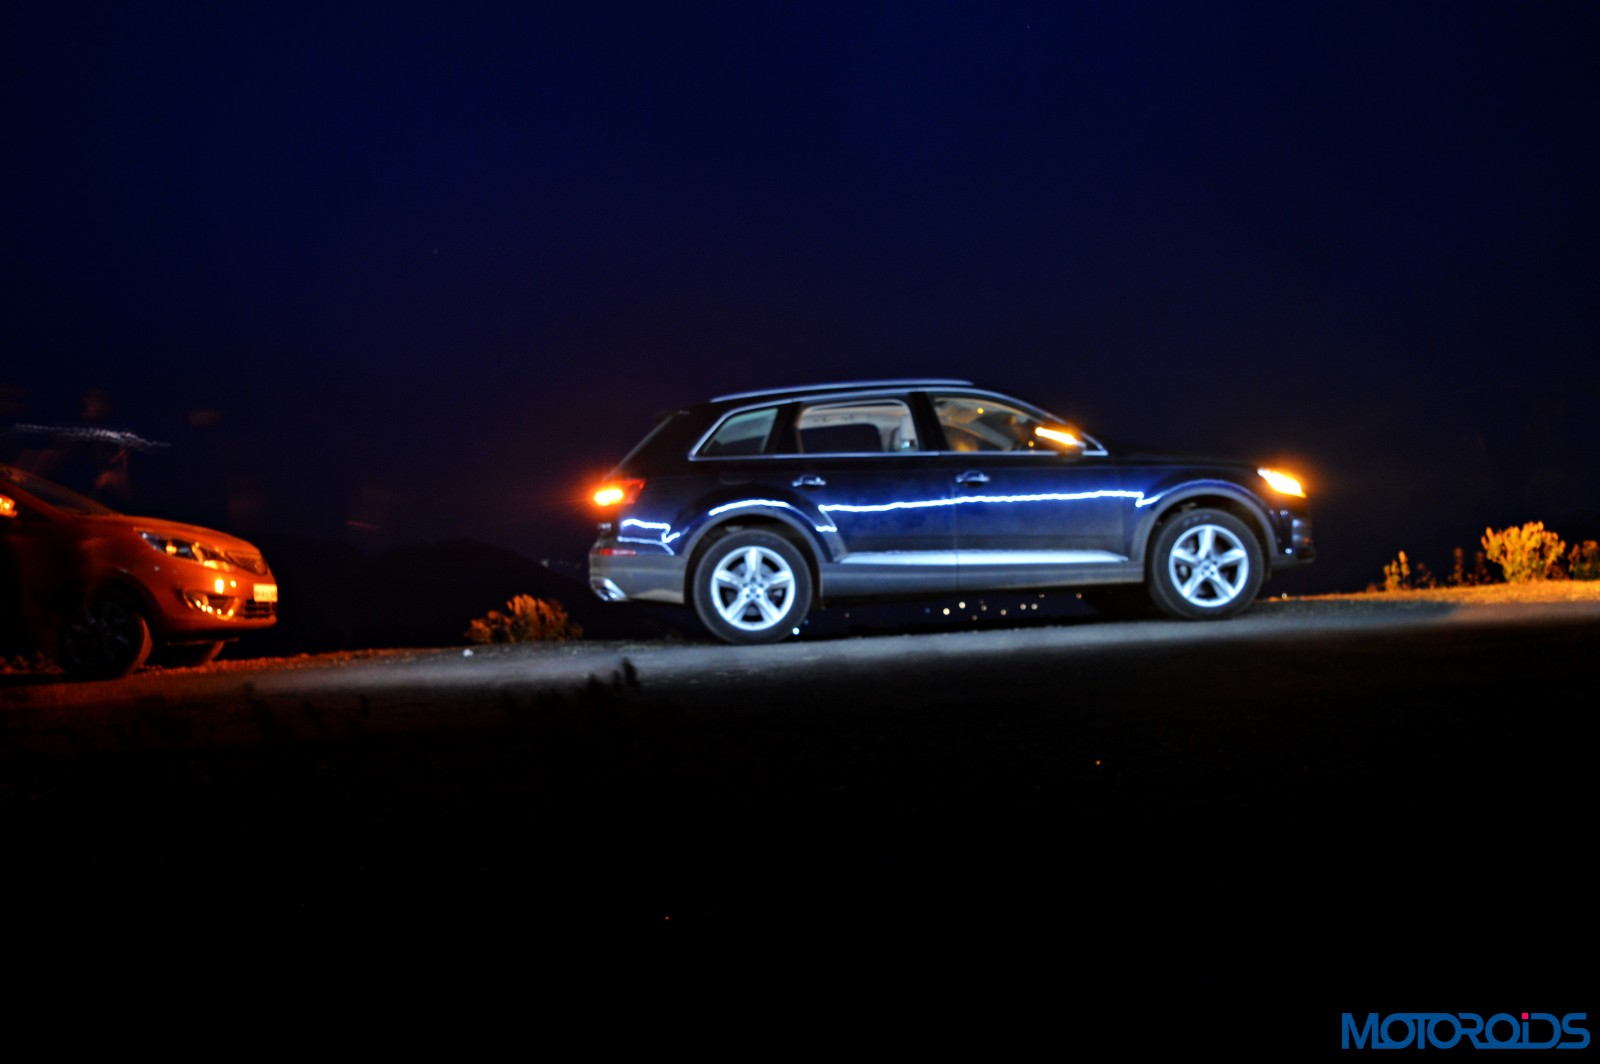 Audi Q7 - Weekend Travelogue (3)